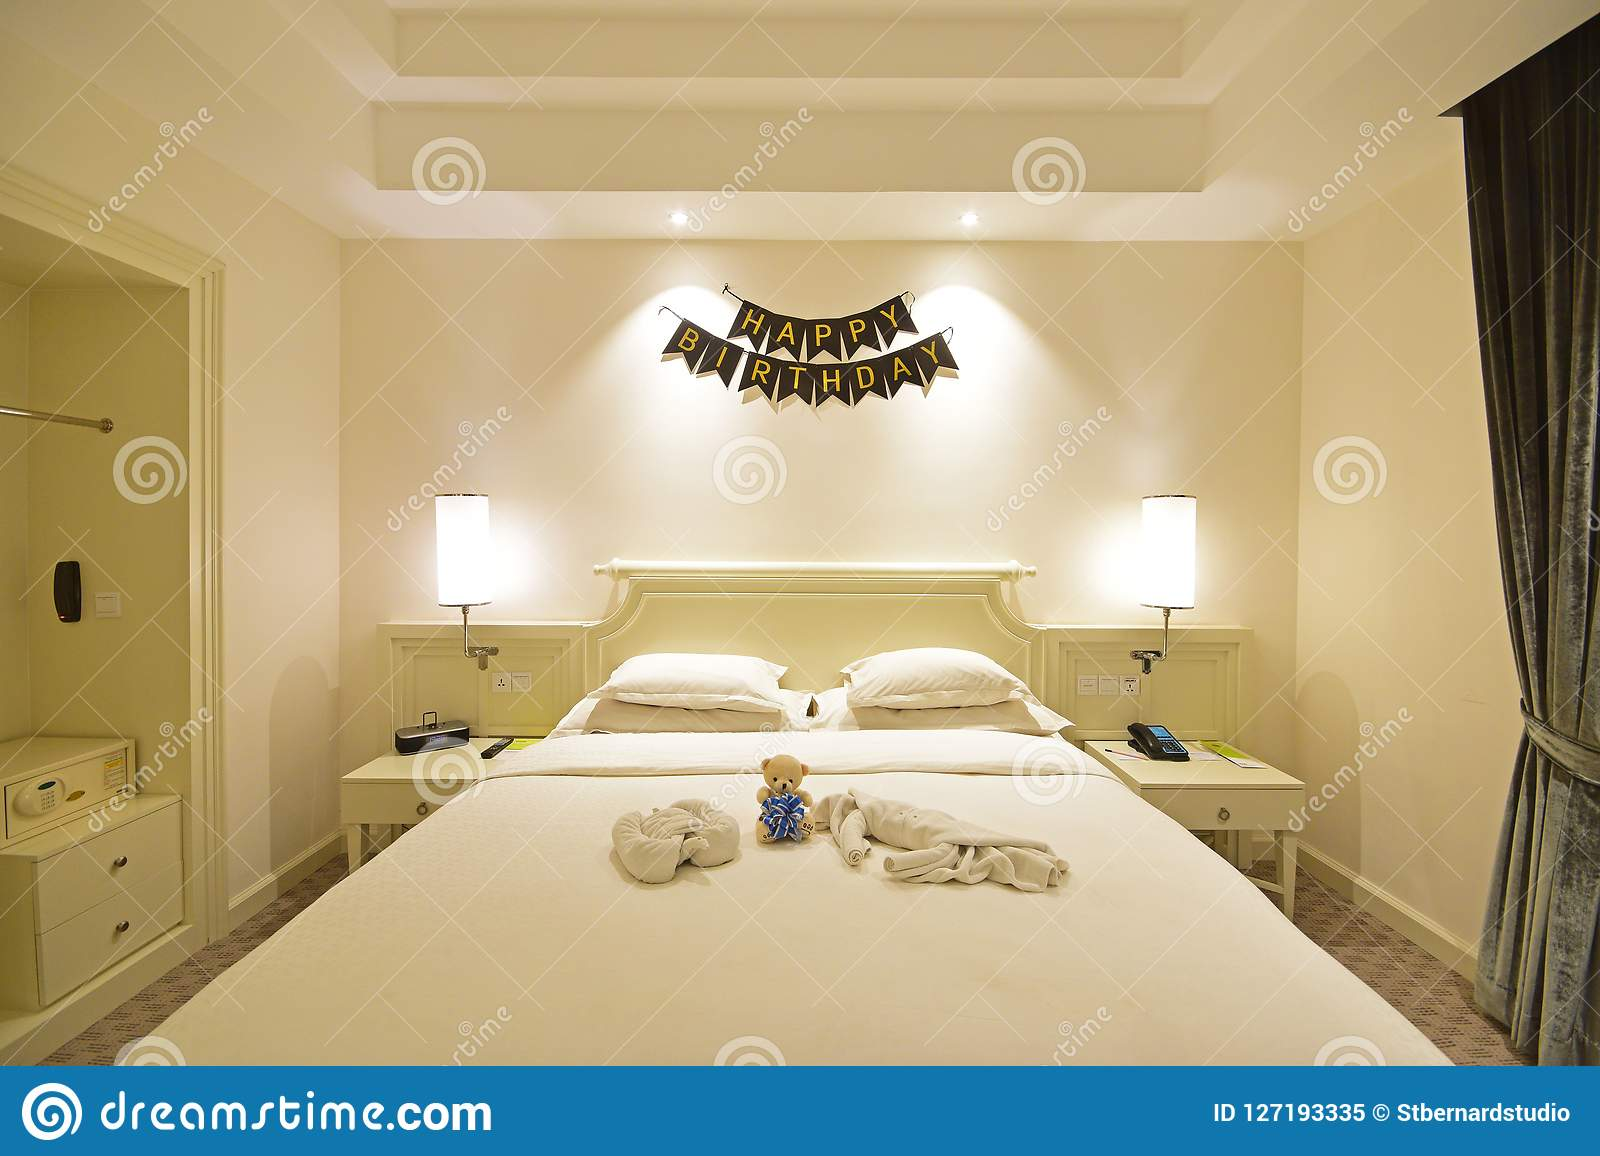 Decoration Hotel Birthday Celebration In A Hotel Room Suite With Decoration On The